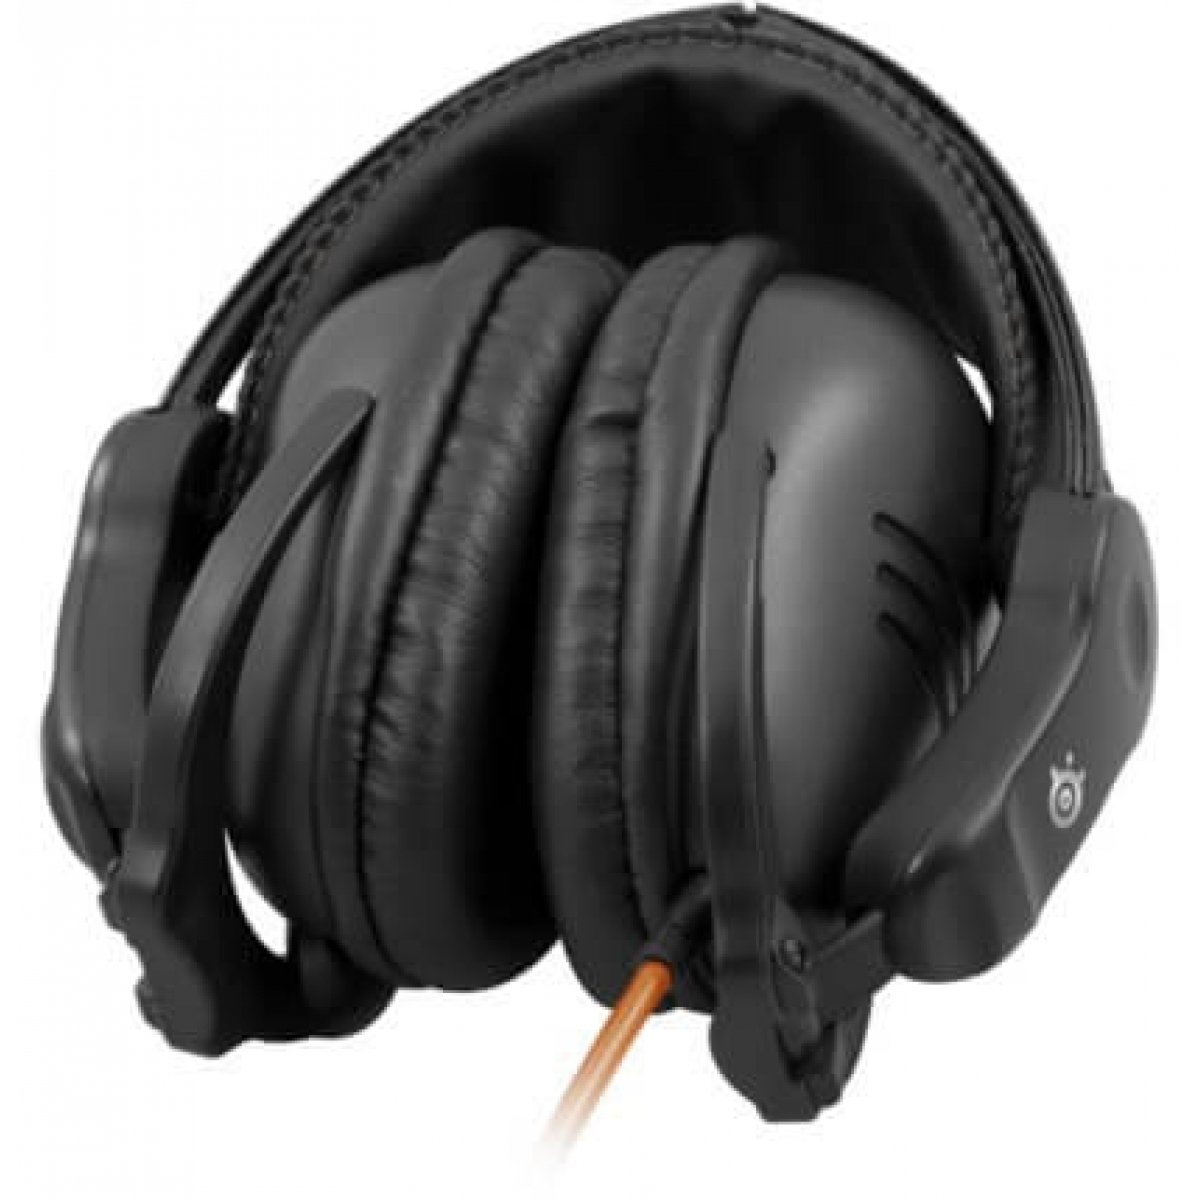 Headset Gamer Steelseries 3Hv2 Dolby 7.1 Preto 61023